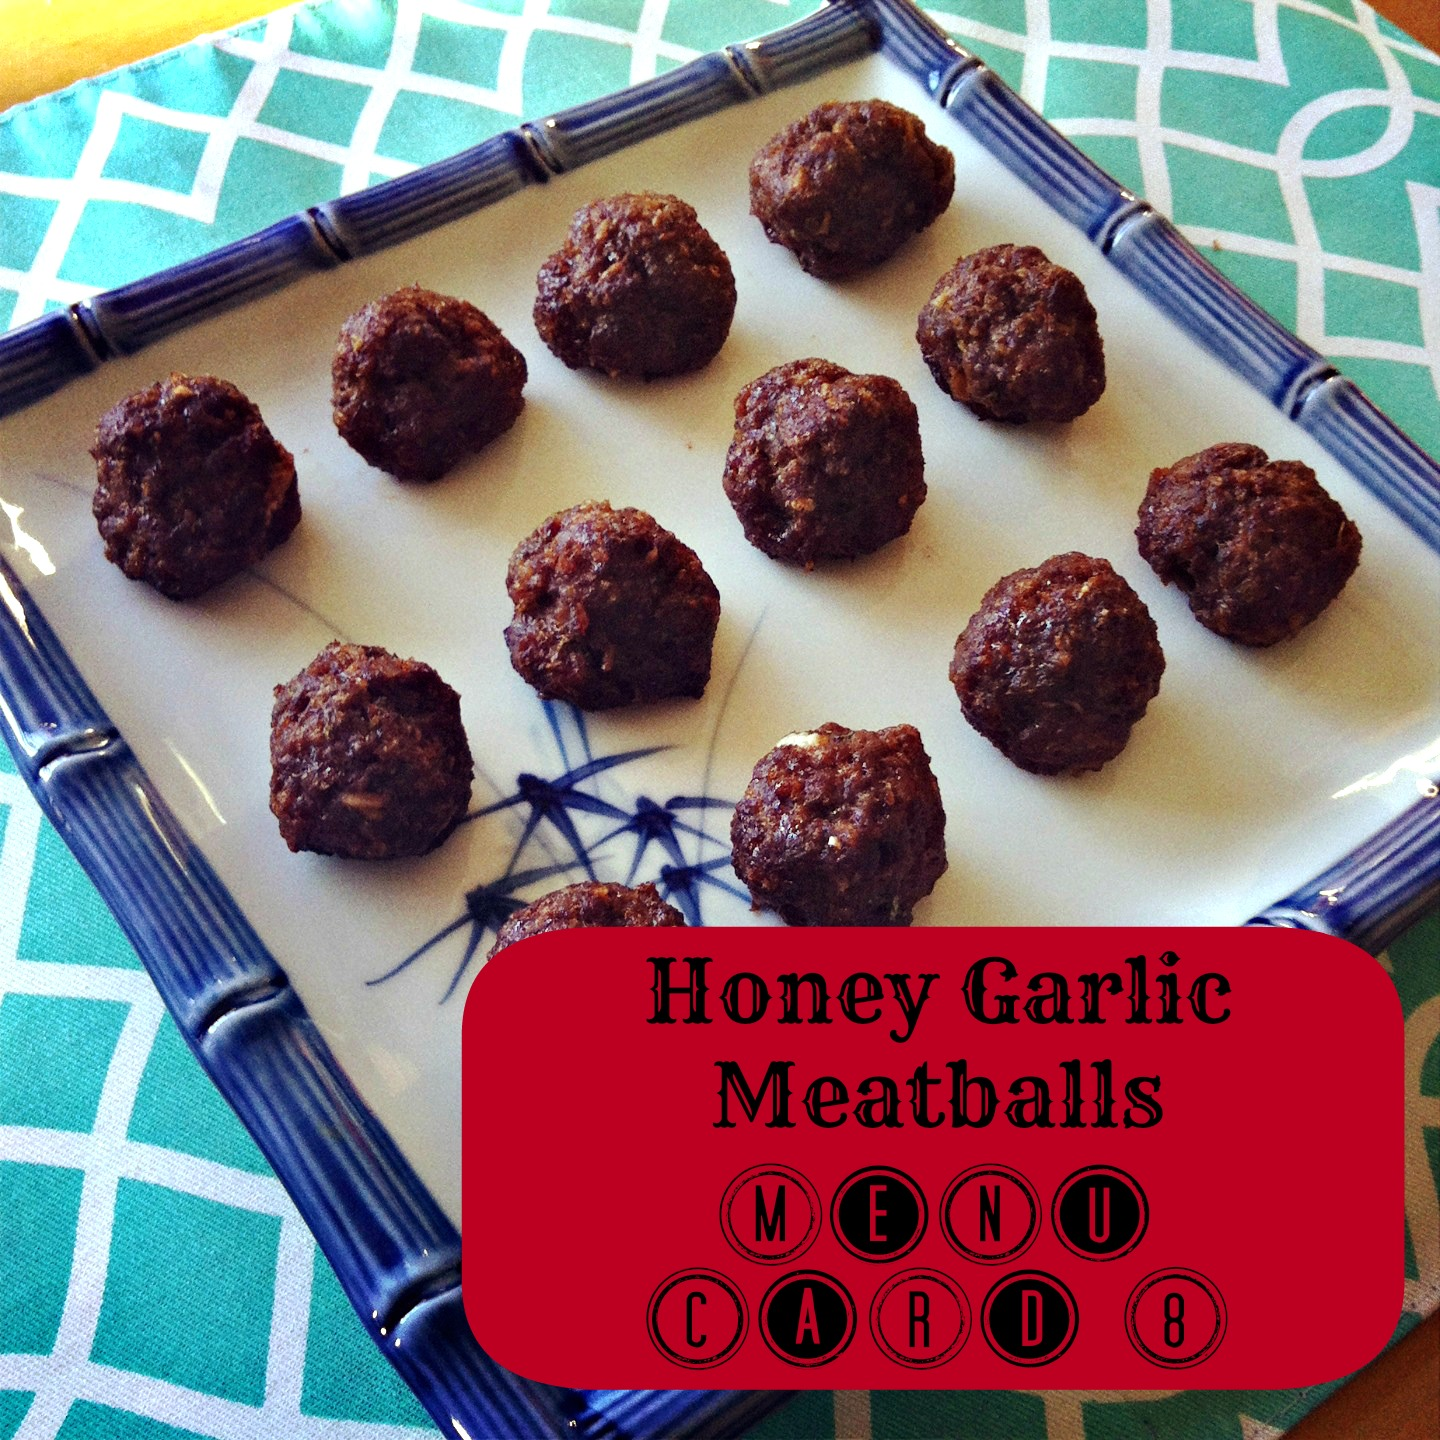 Asian Honey Garlic Meatballs Menu Card 8 From Sew Creative's Meal Planning Series